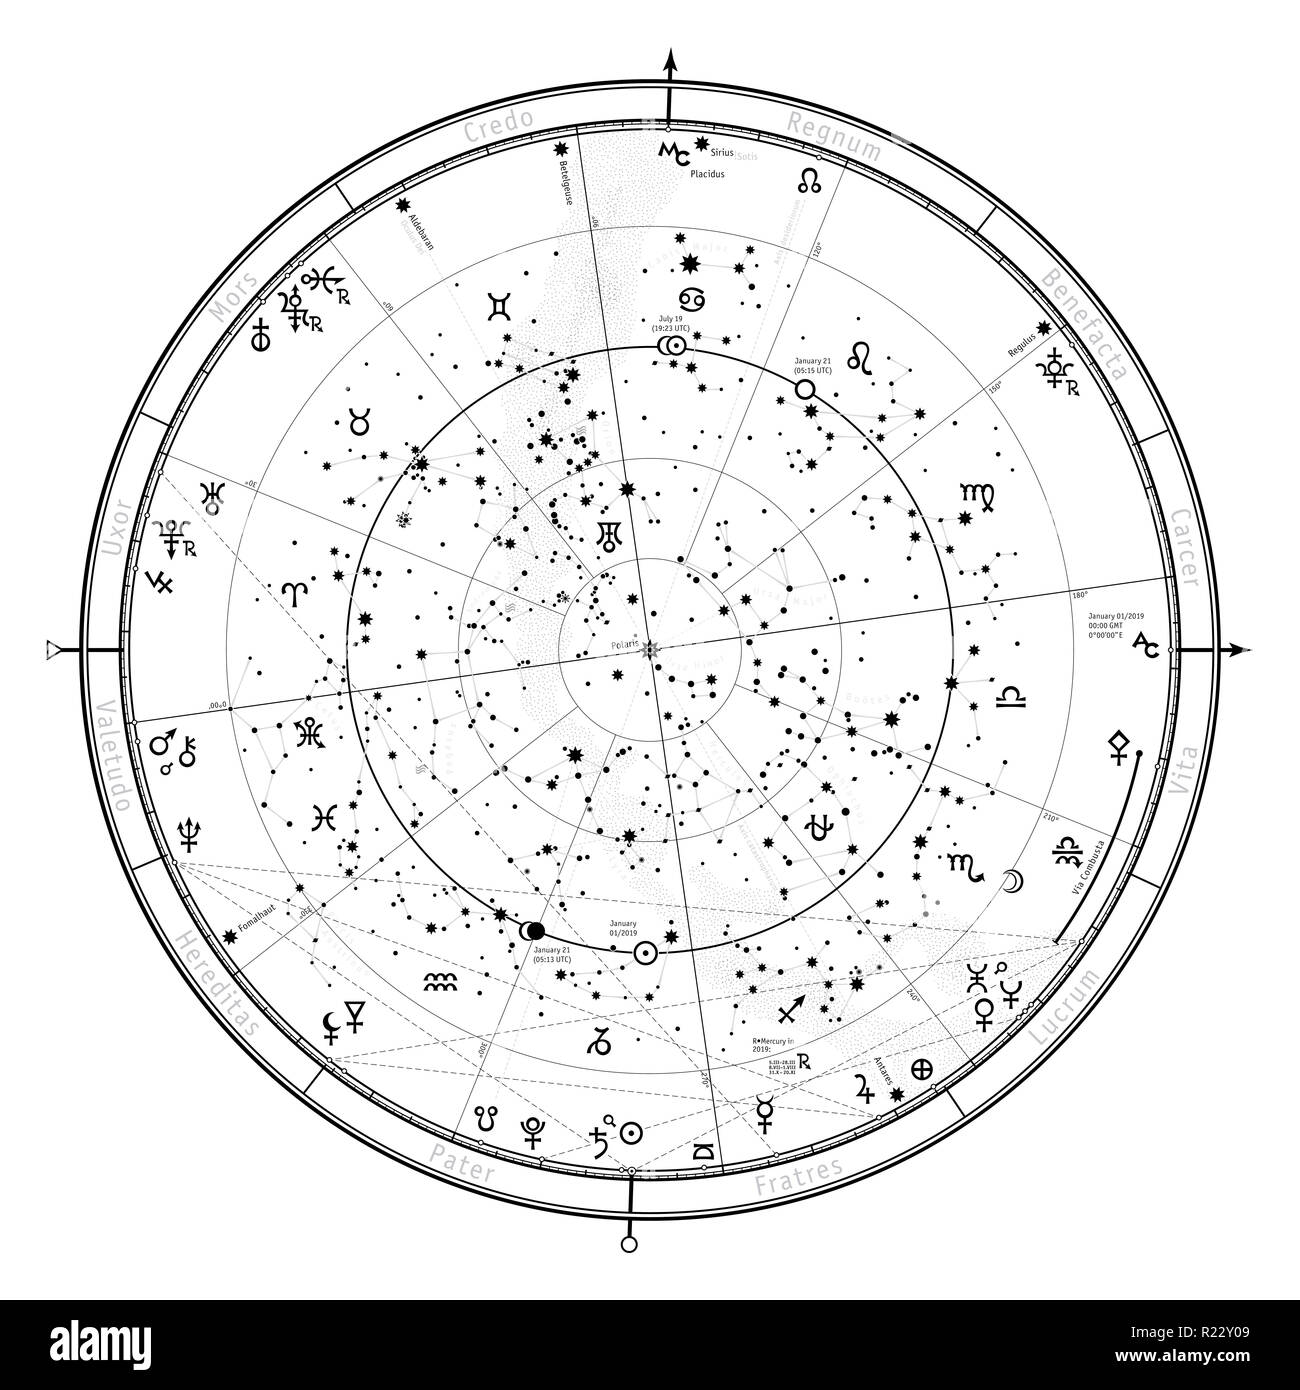 Astrological Celestial map of Northern Hemisphere, Horoscope ... on capitals of the world map, ancient greek astronomy map, moon map, fire map, astrology chart map, azimuth map, cat map, complete astrology map, earth map, world war z map, everest map, monkey map, constellation map, flags of the world map, skagen map, story map, zombie map, astrological sign map, scorpius map, titanic map,